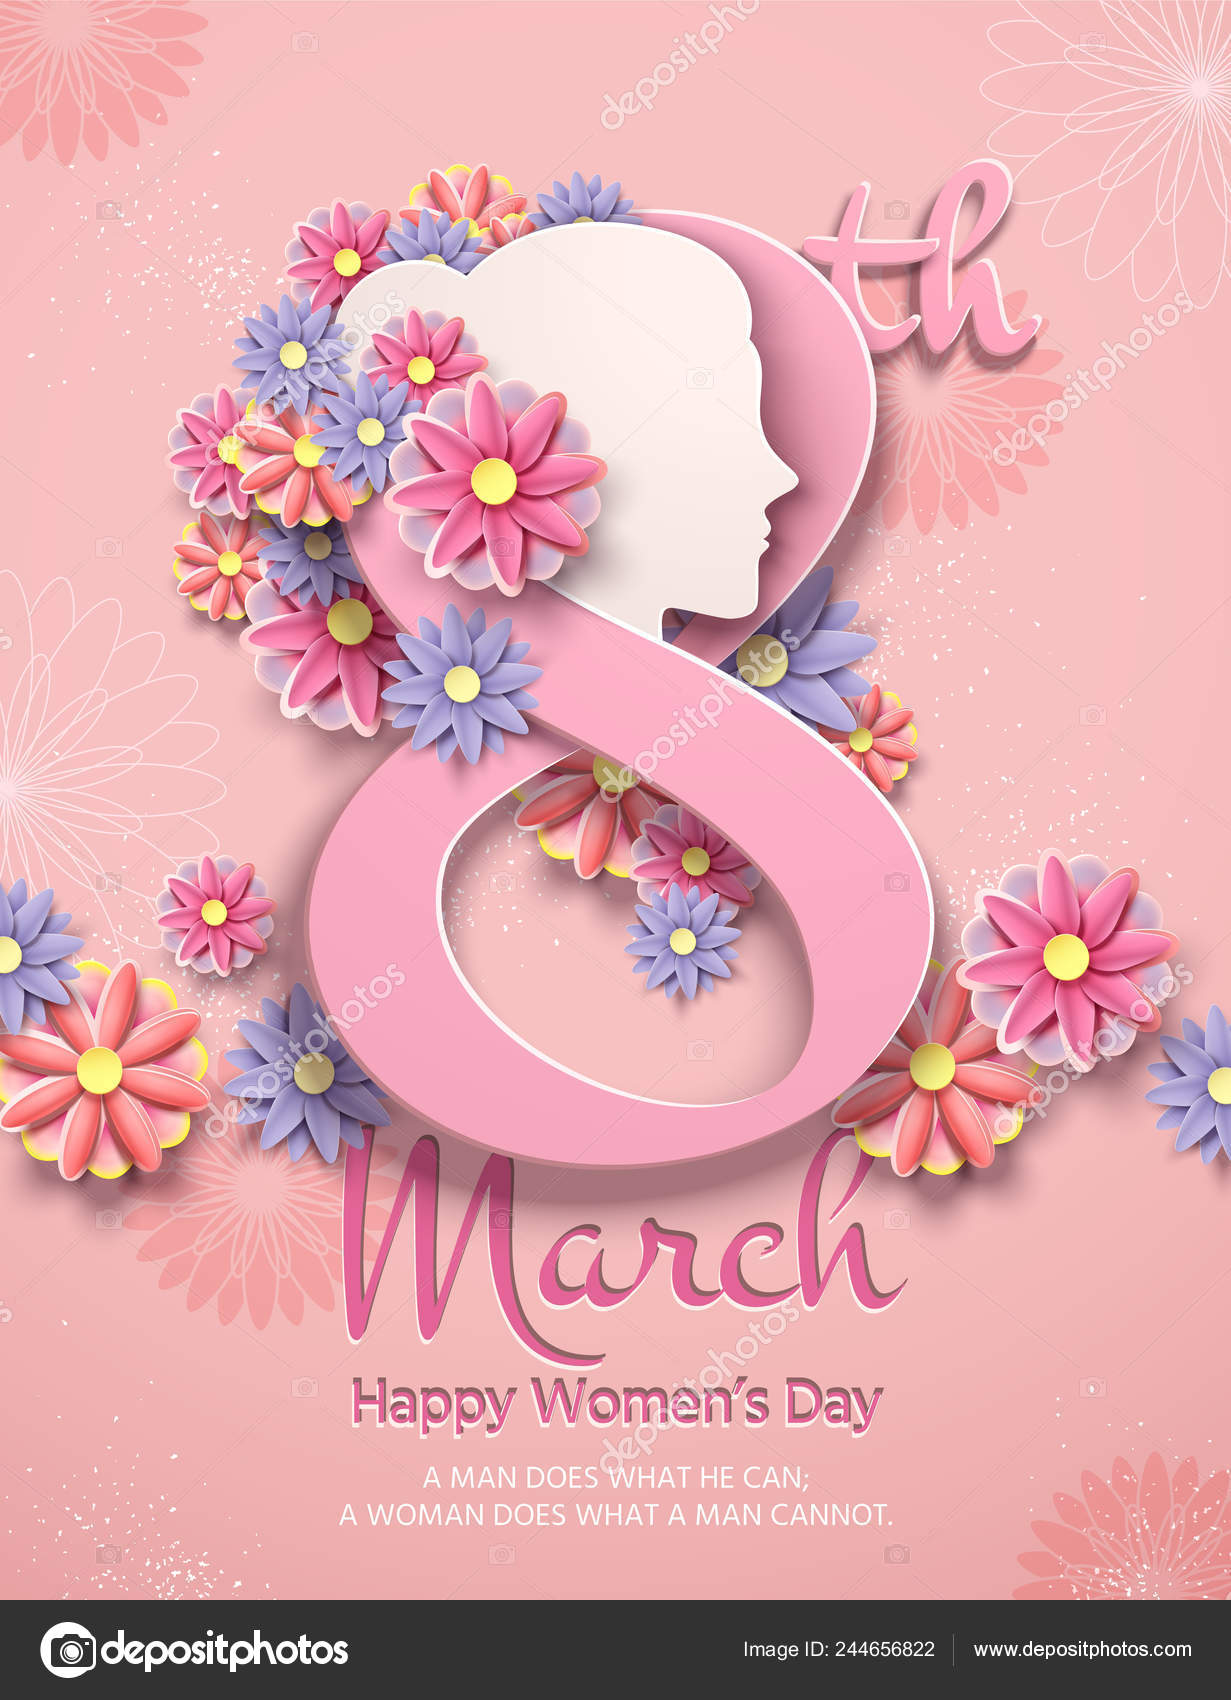 march women day poster paper flowers light pink vector image by c kchungtw vector stock 244656822